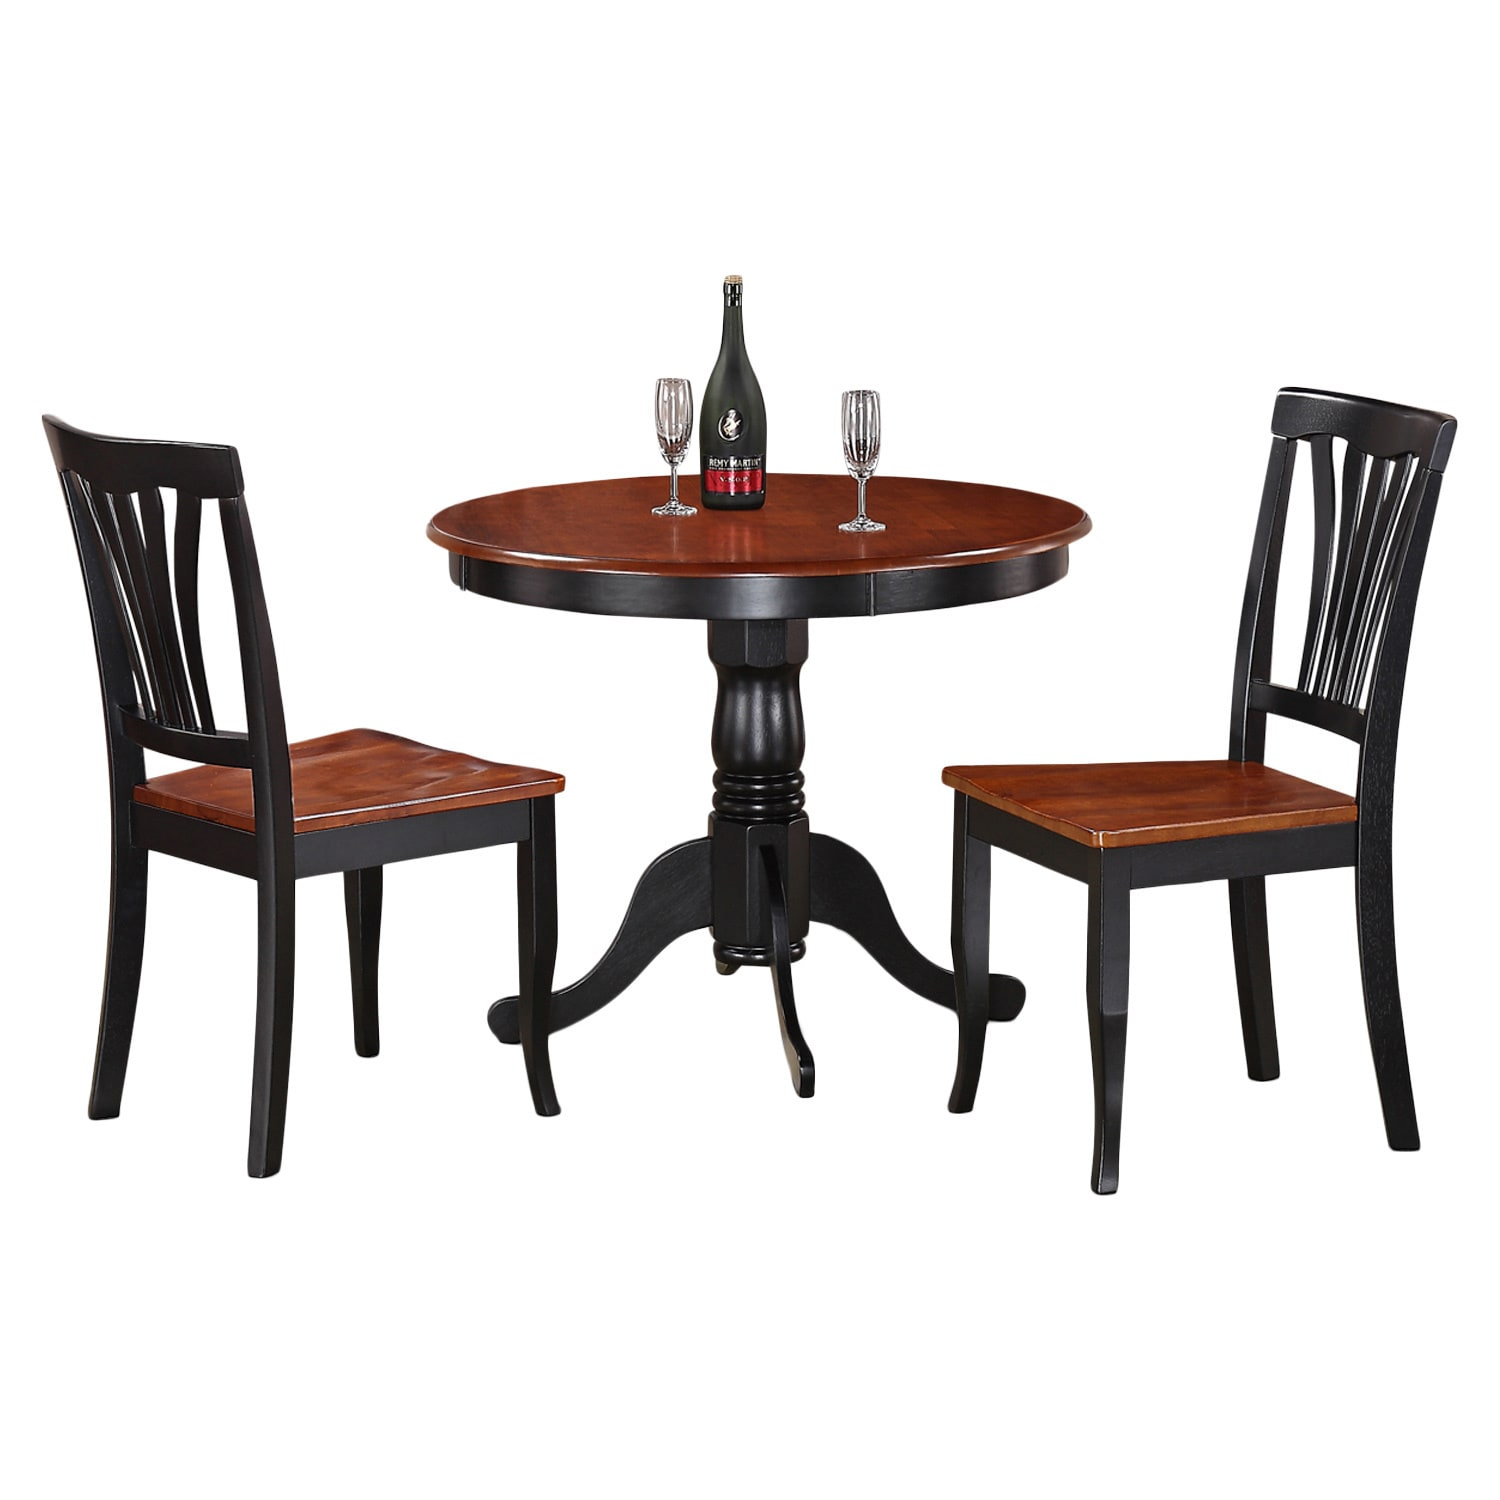 Delicieux Shop 3 Piece Kitchen Nook Dining Set Small Kitchen Table And 2 Kitchen  Chairs   Free Shipping Today   Overstock.com   10200001